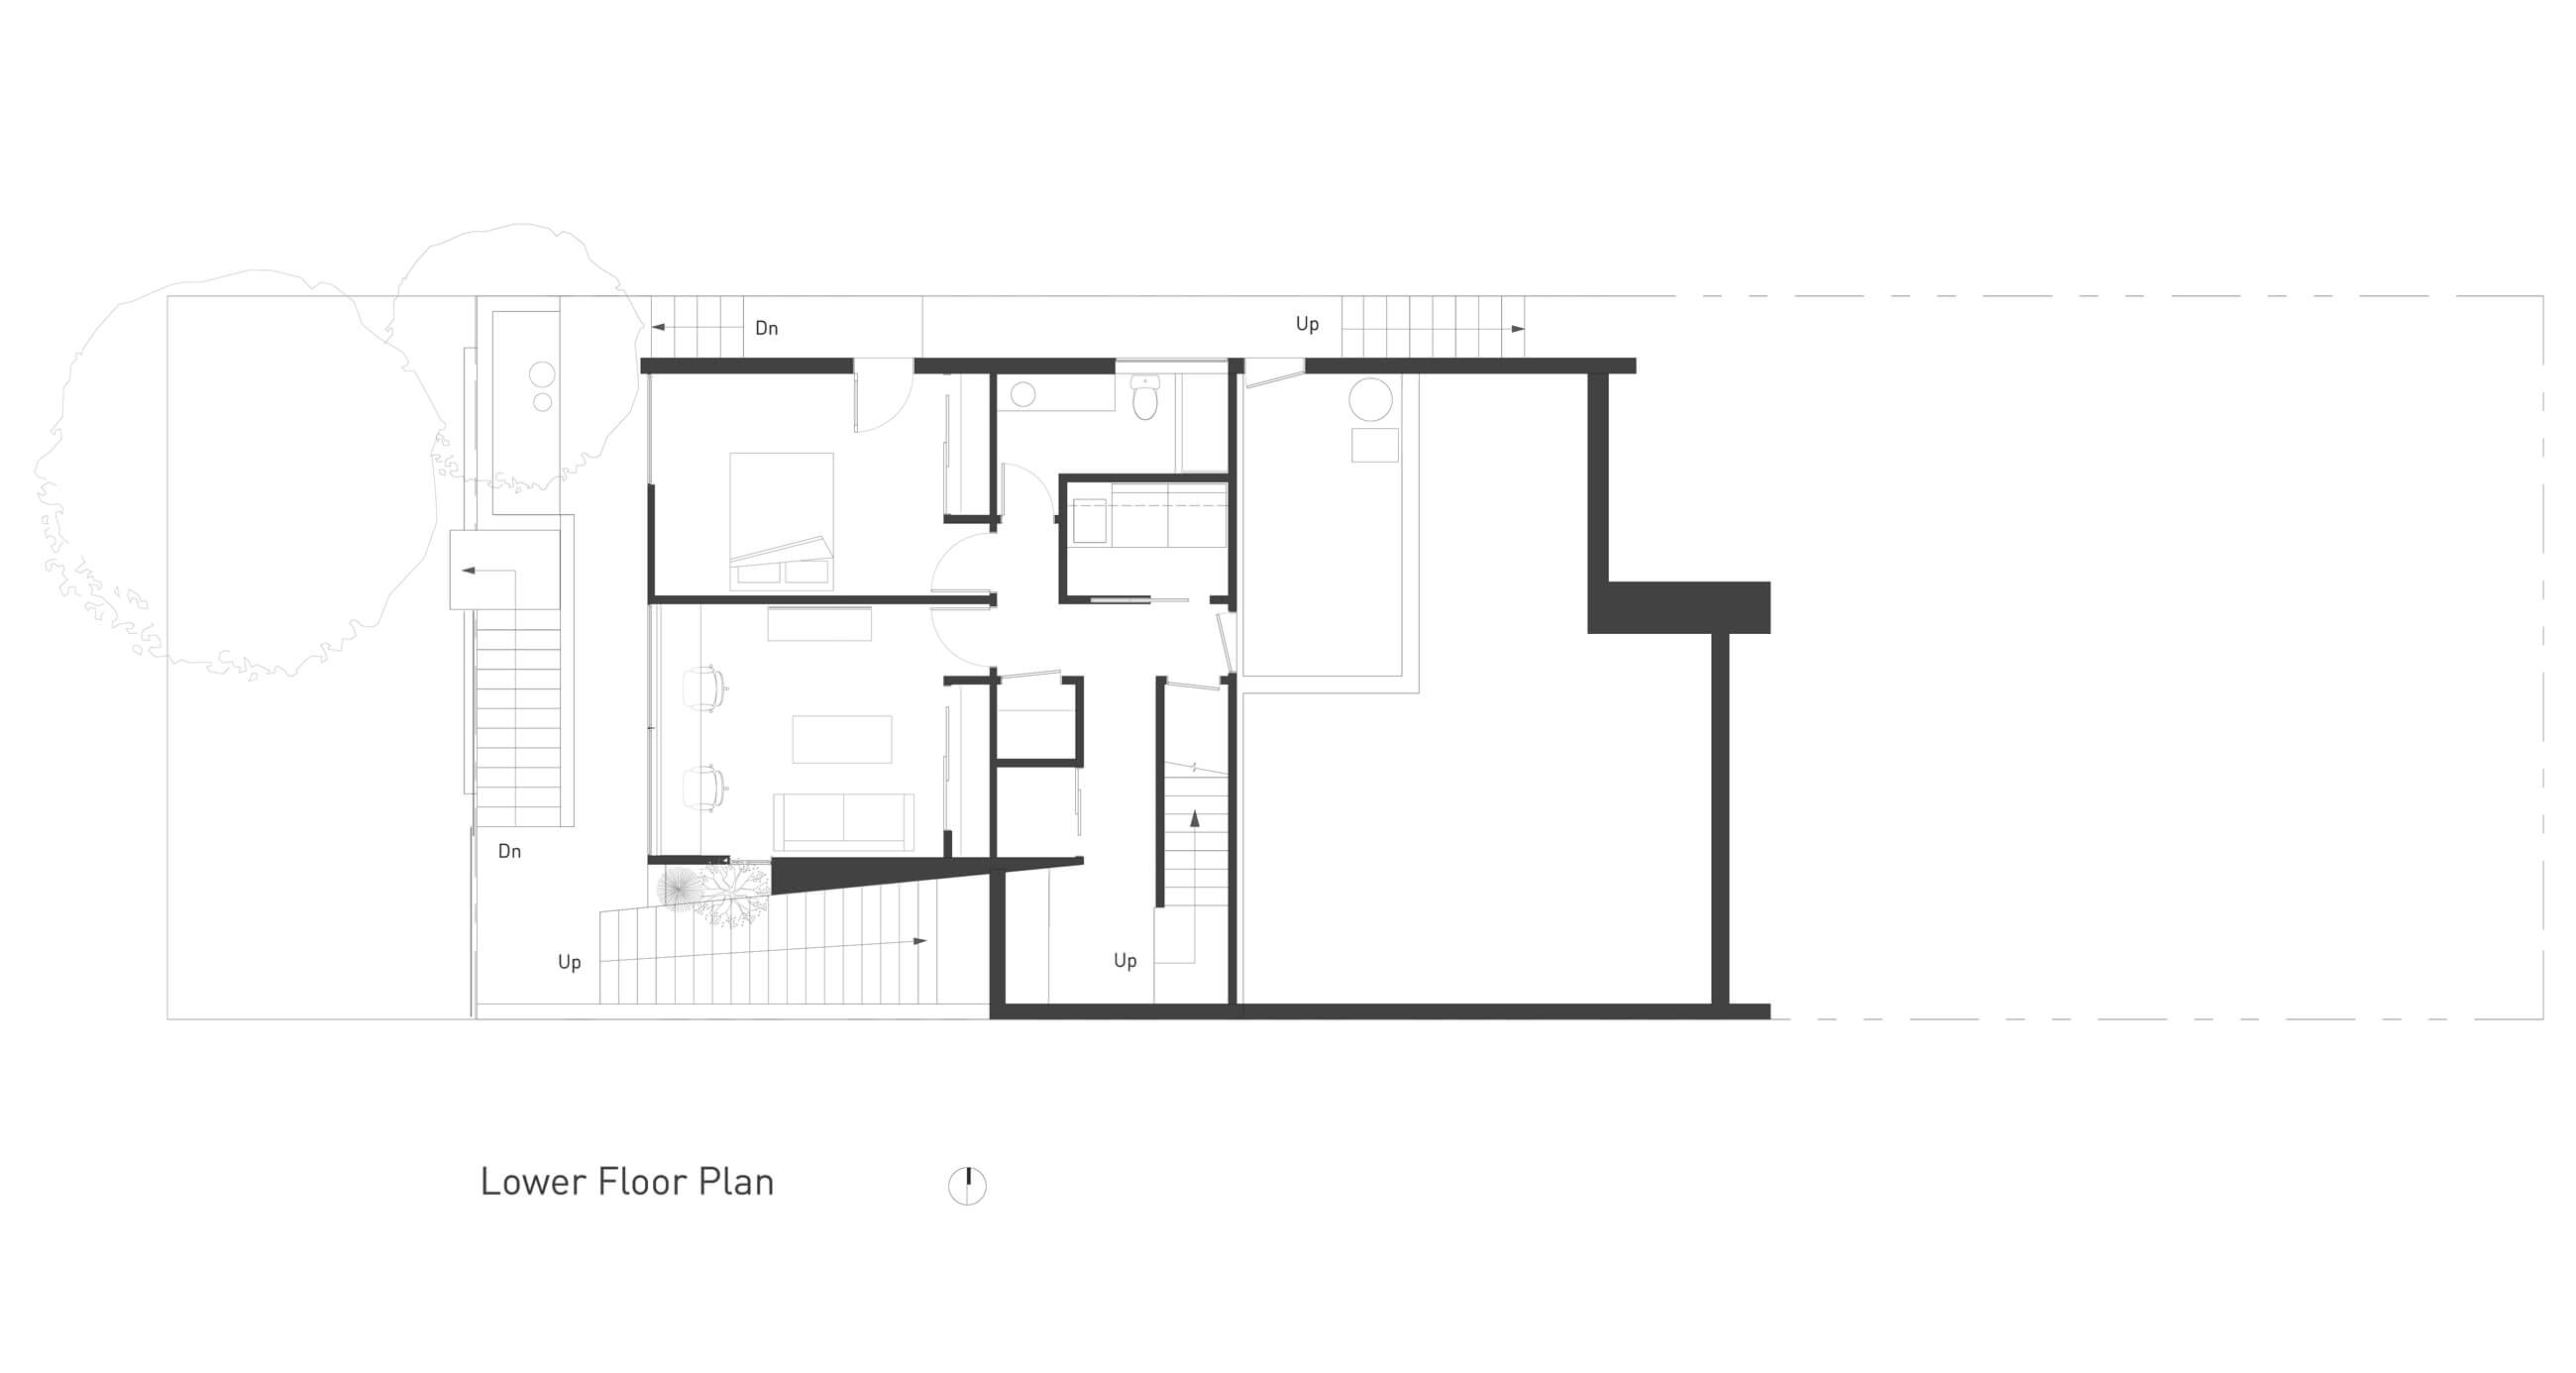 d_lower-floor-plan